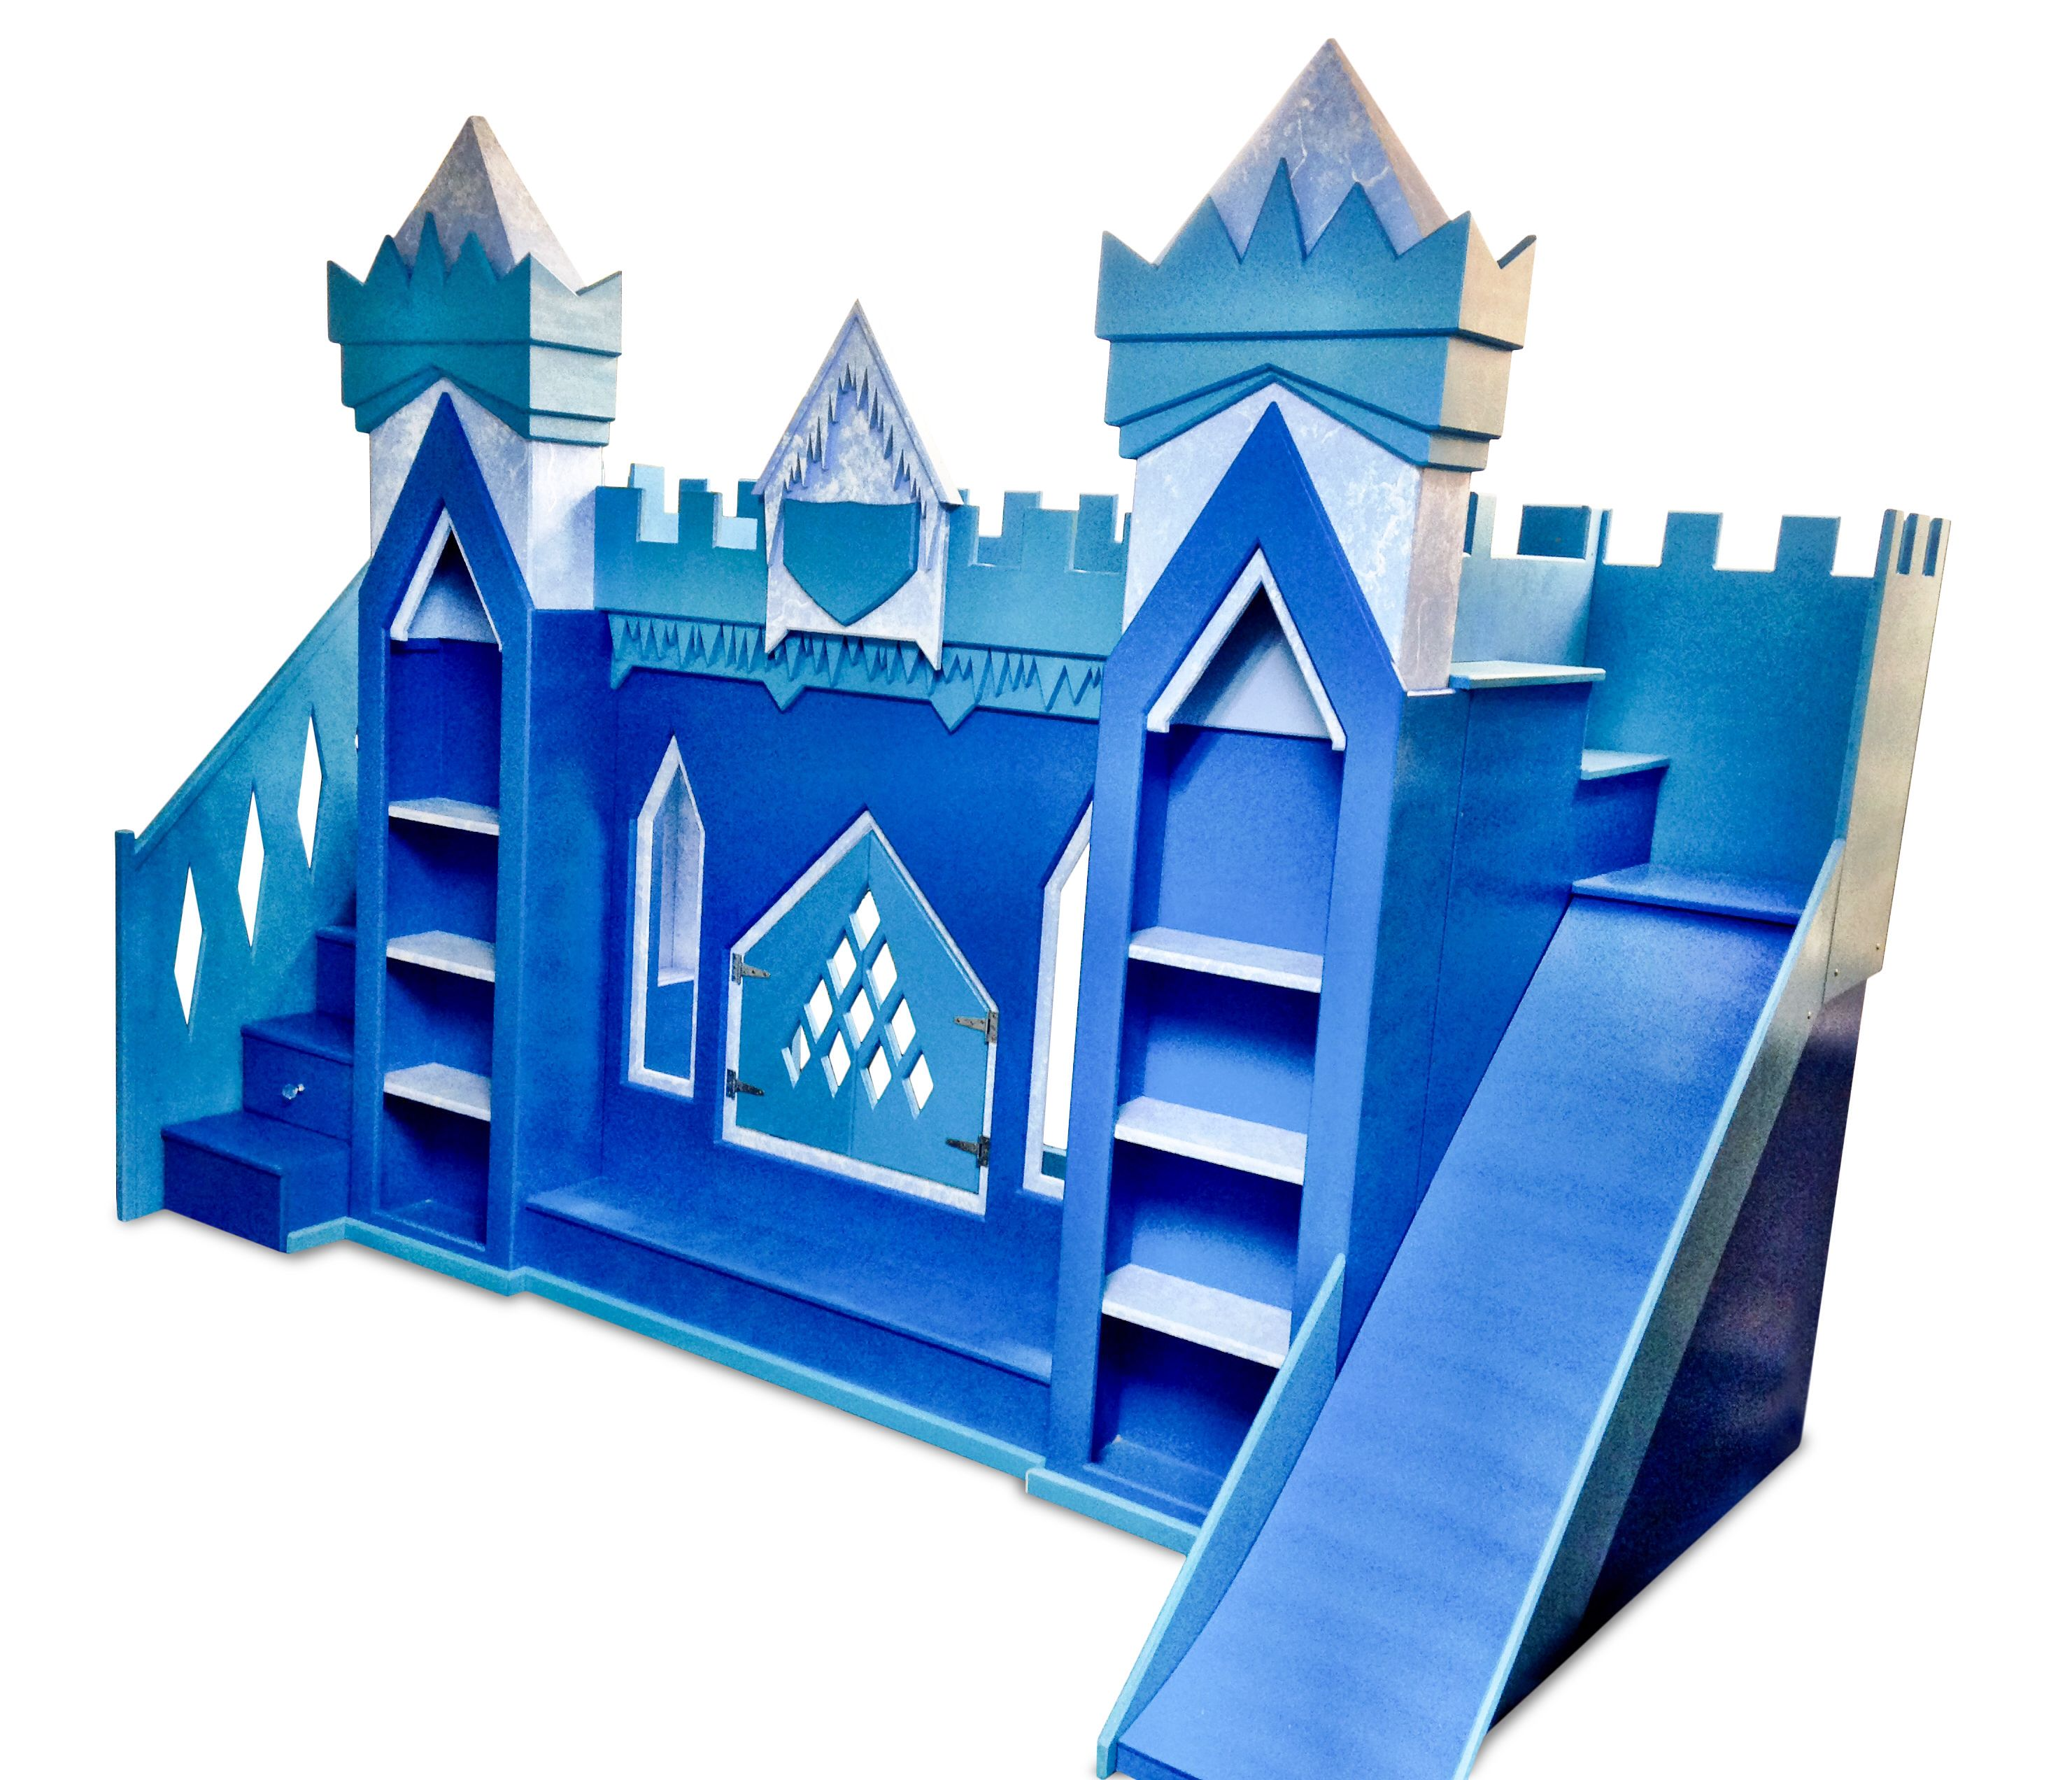 The original frozen inspired elsa ice castle bunk bed This